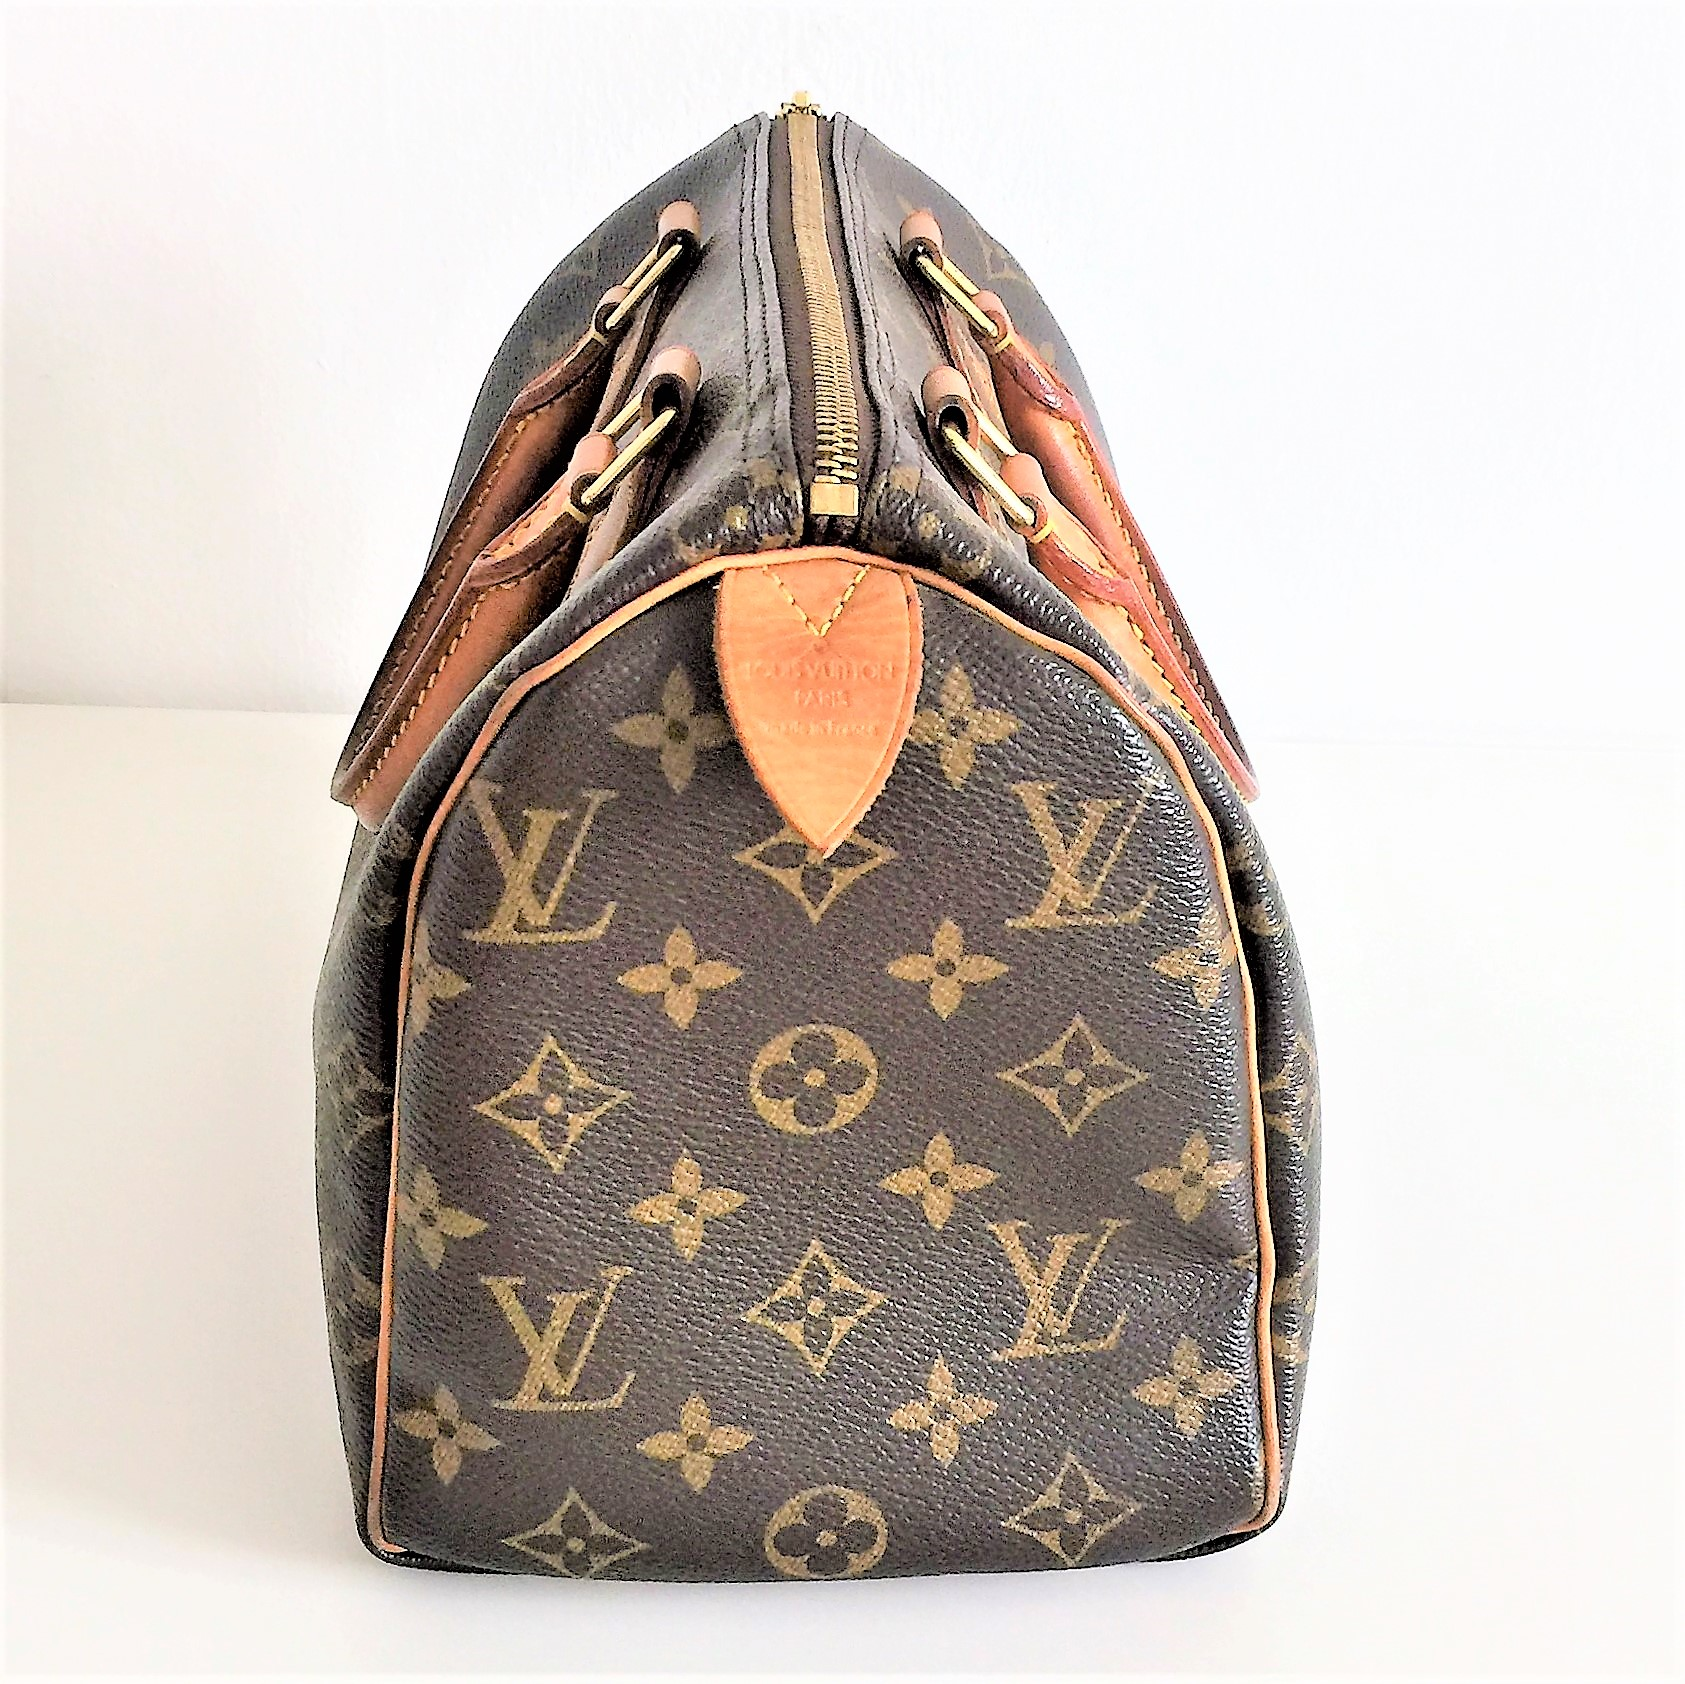 Borsa Louis Vuitton Monogram Speedy 25, di seconda mano in ...